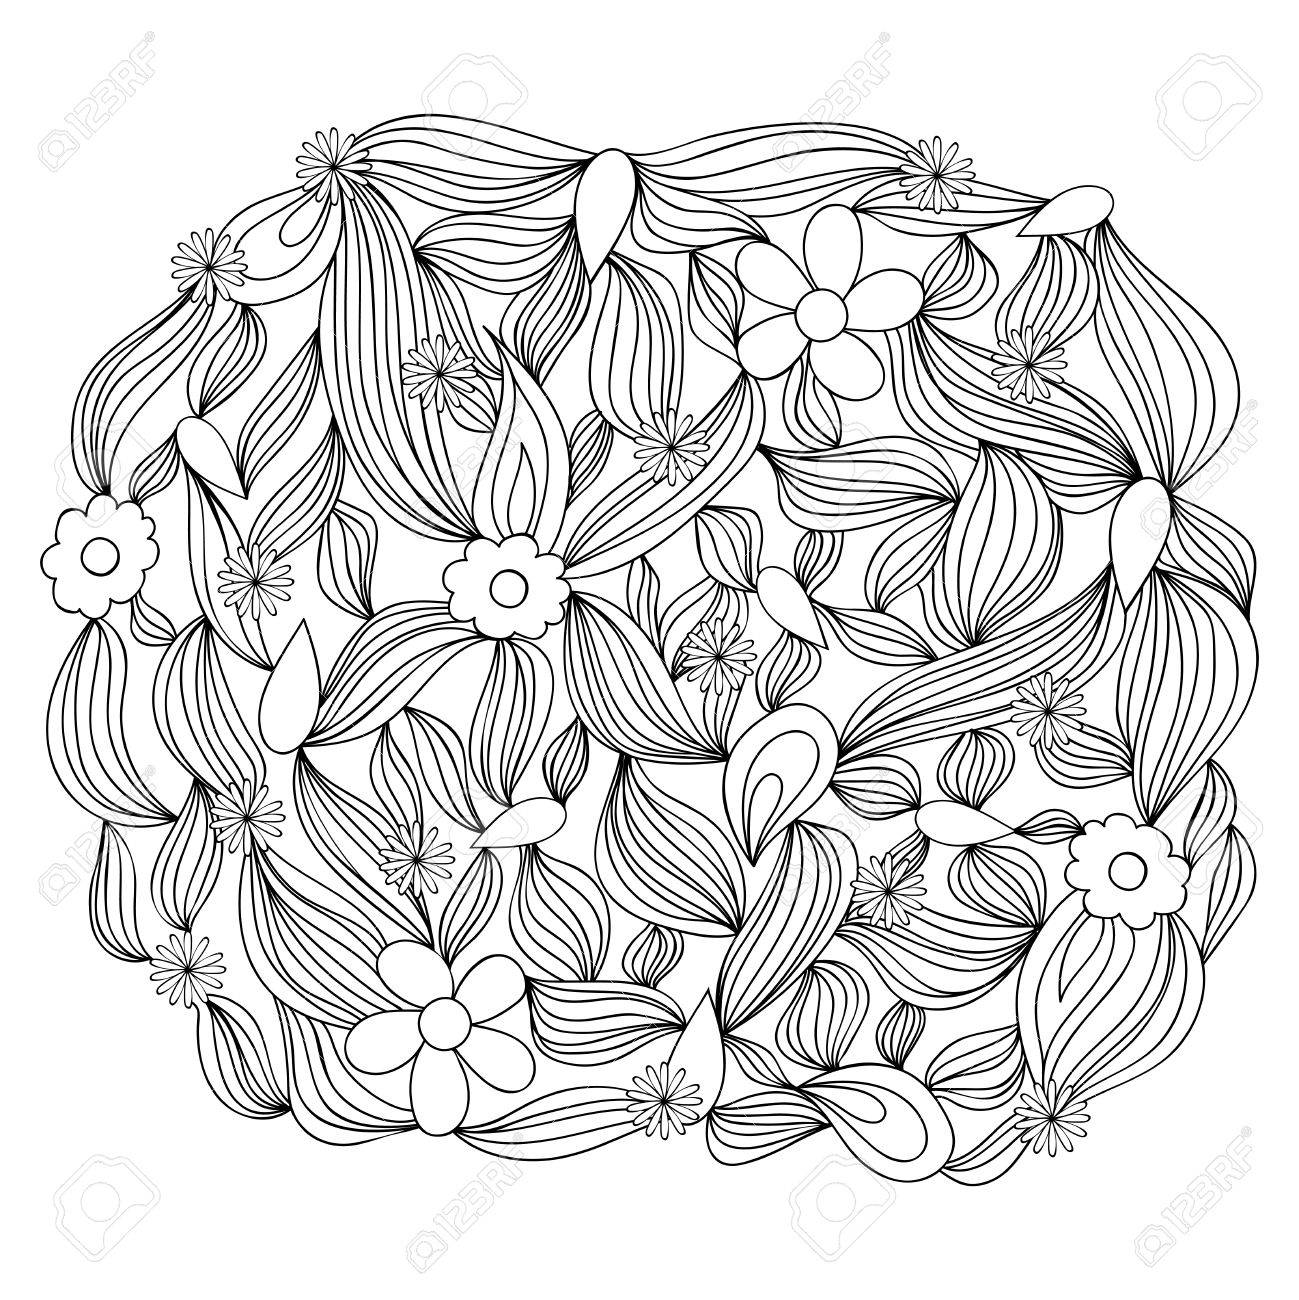 hand drawn round ornament template for greeting card postcard